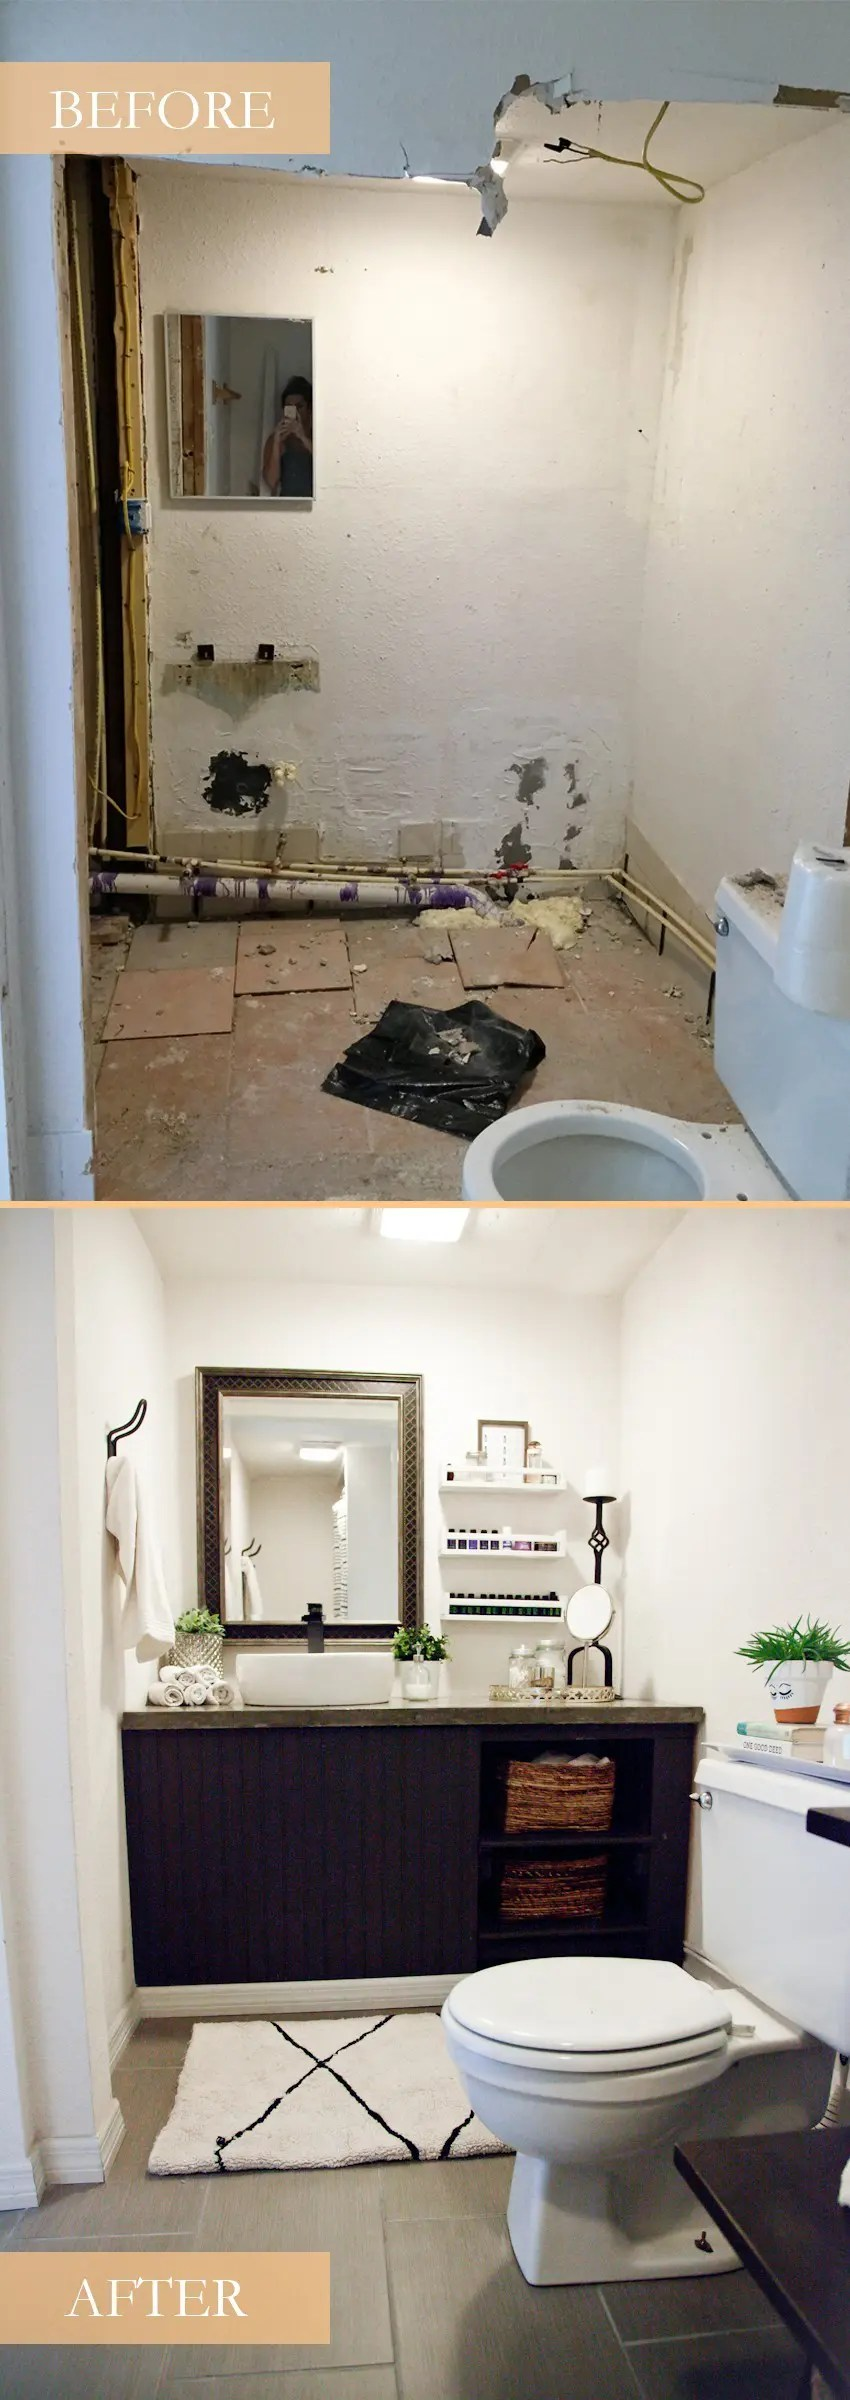 Trend Our Studio Bathroom Remodel A Before and After